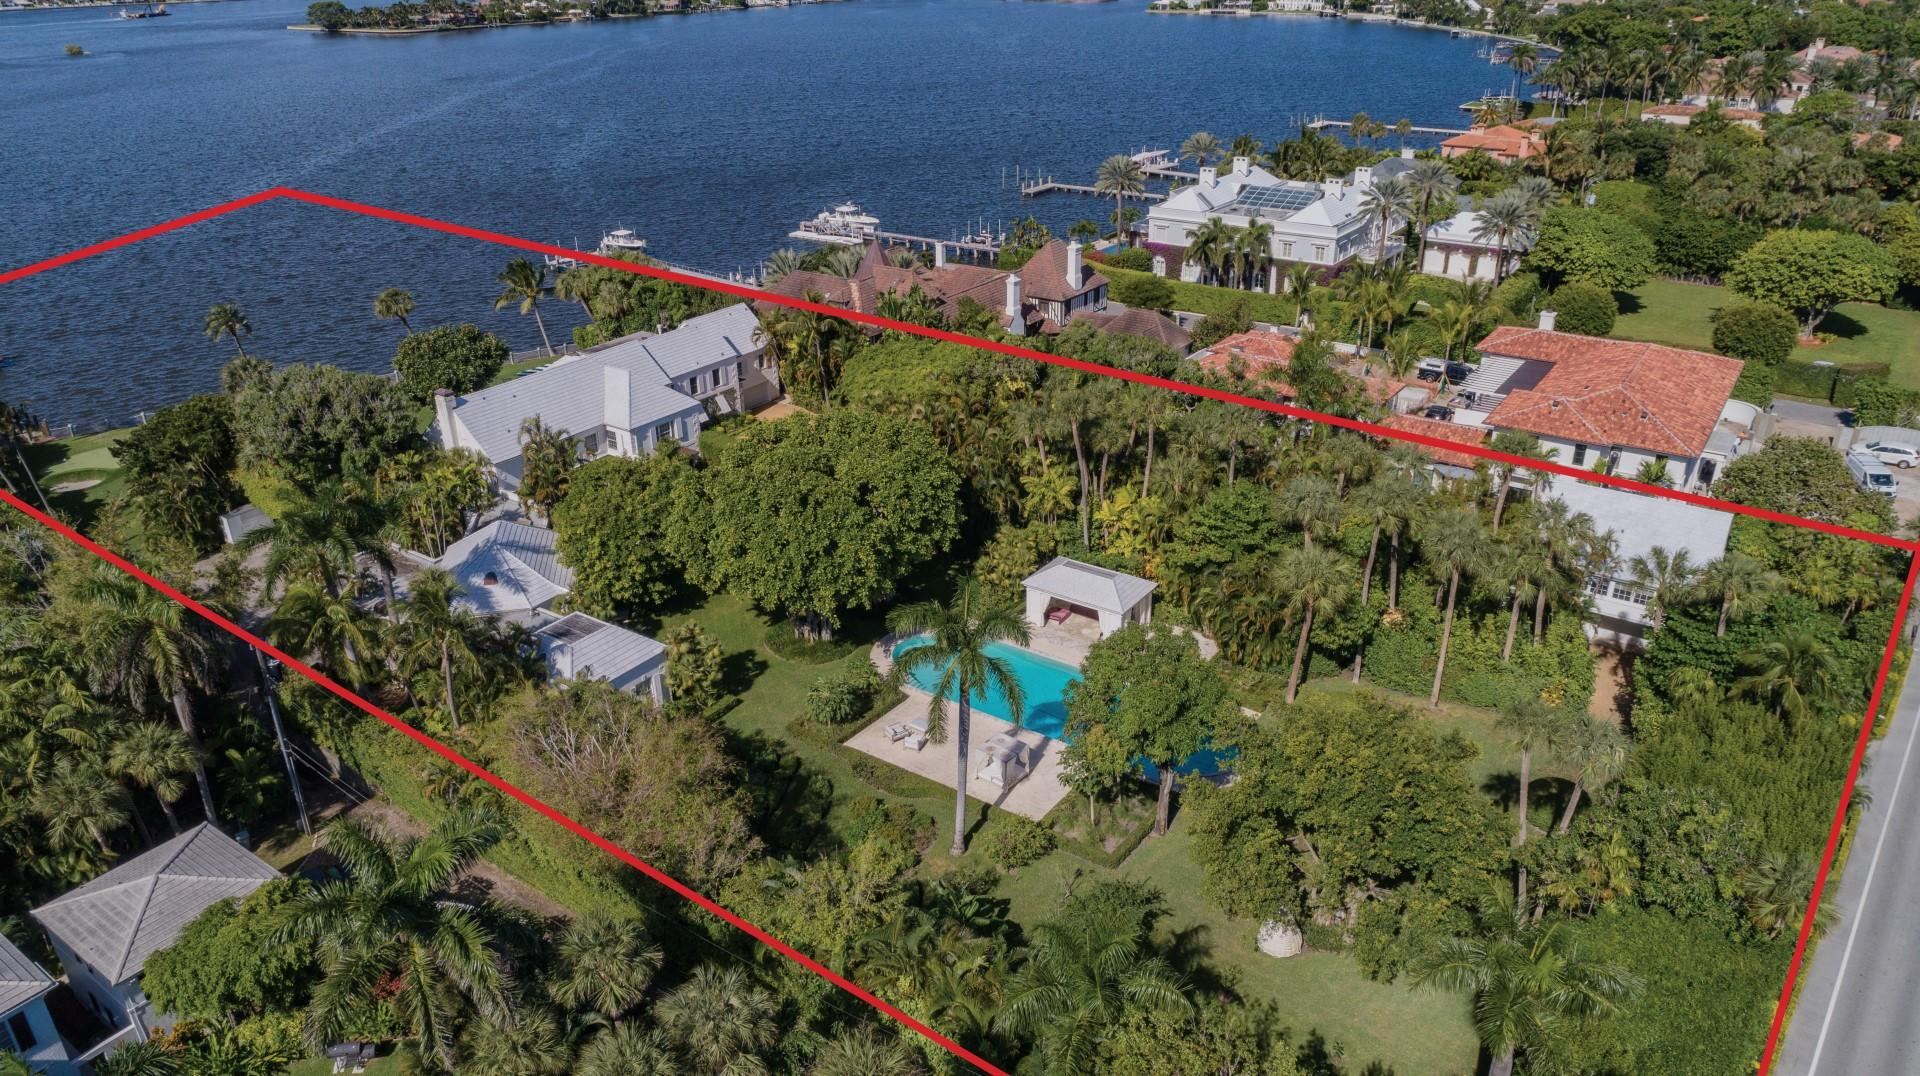 854 S County Road, Palm Beach, Florida 33480, 6 Bedrooms Bedrooms, ,8.2 BathroomsBathrooms,Single family detached,For sale,County,RX-10422702